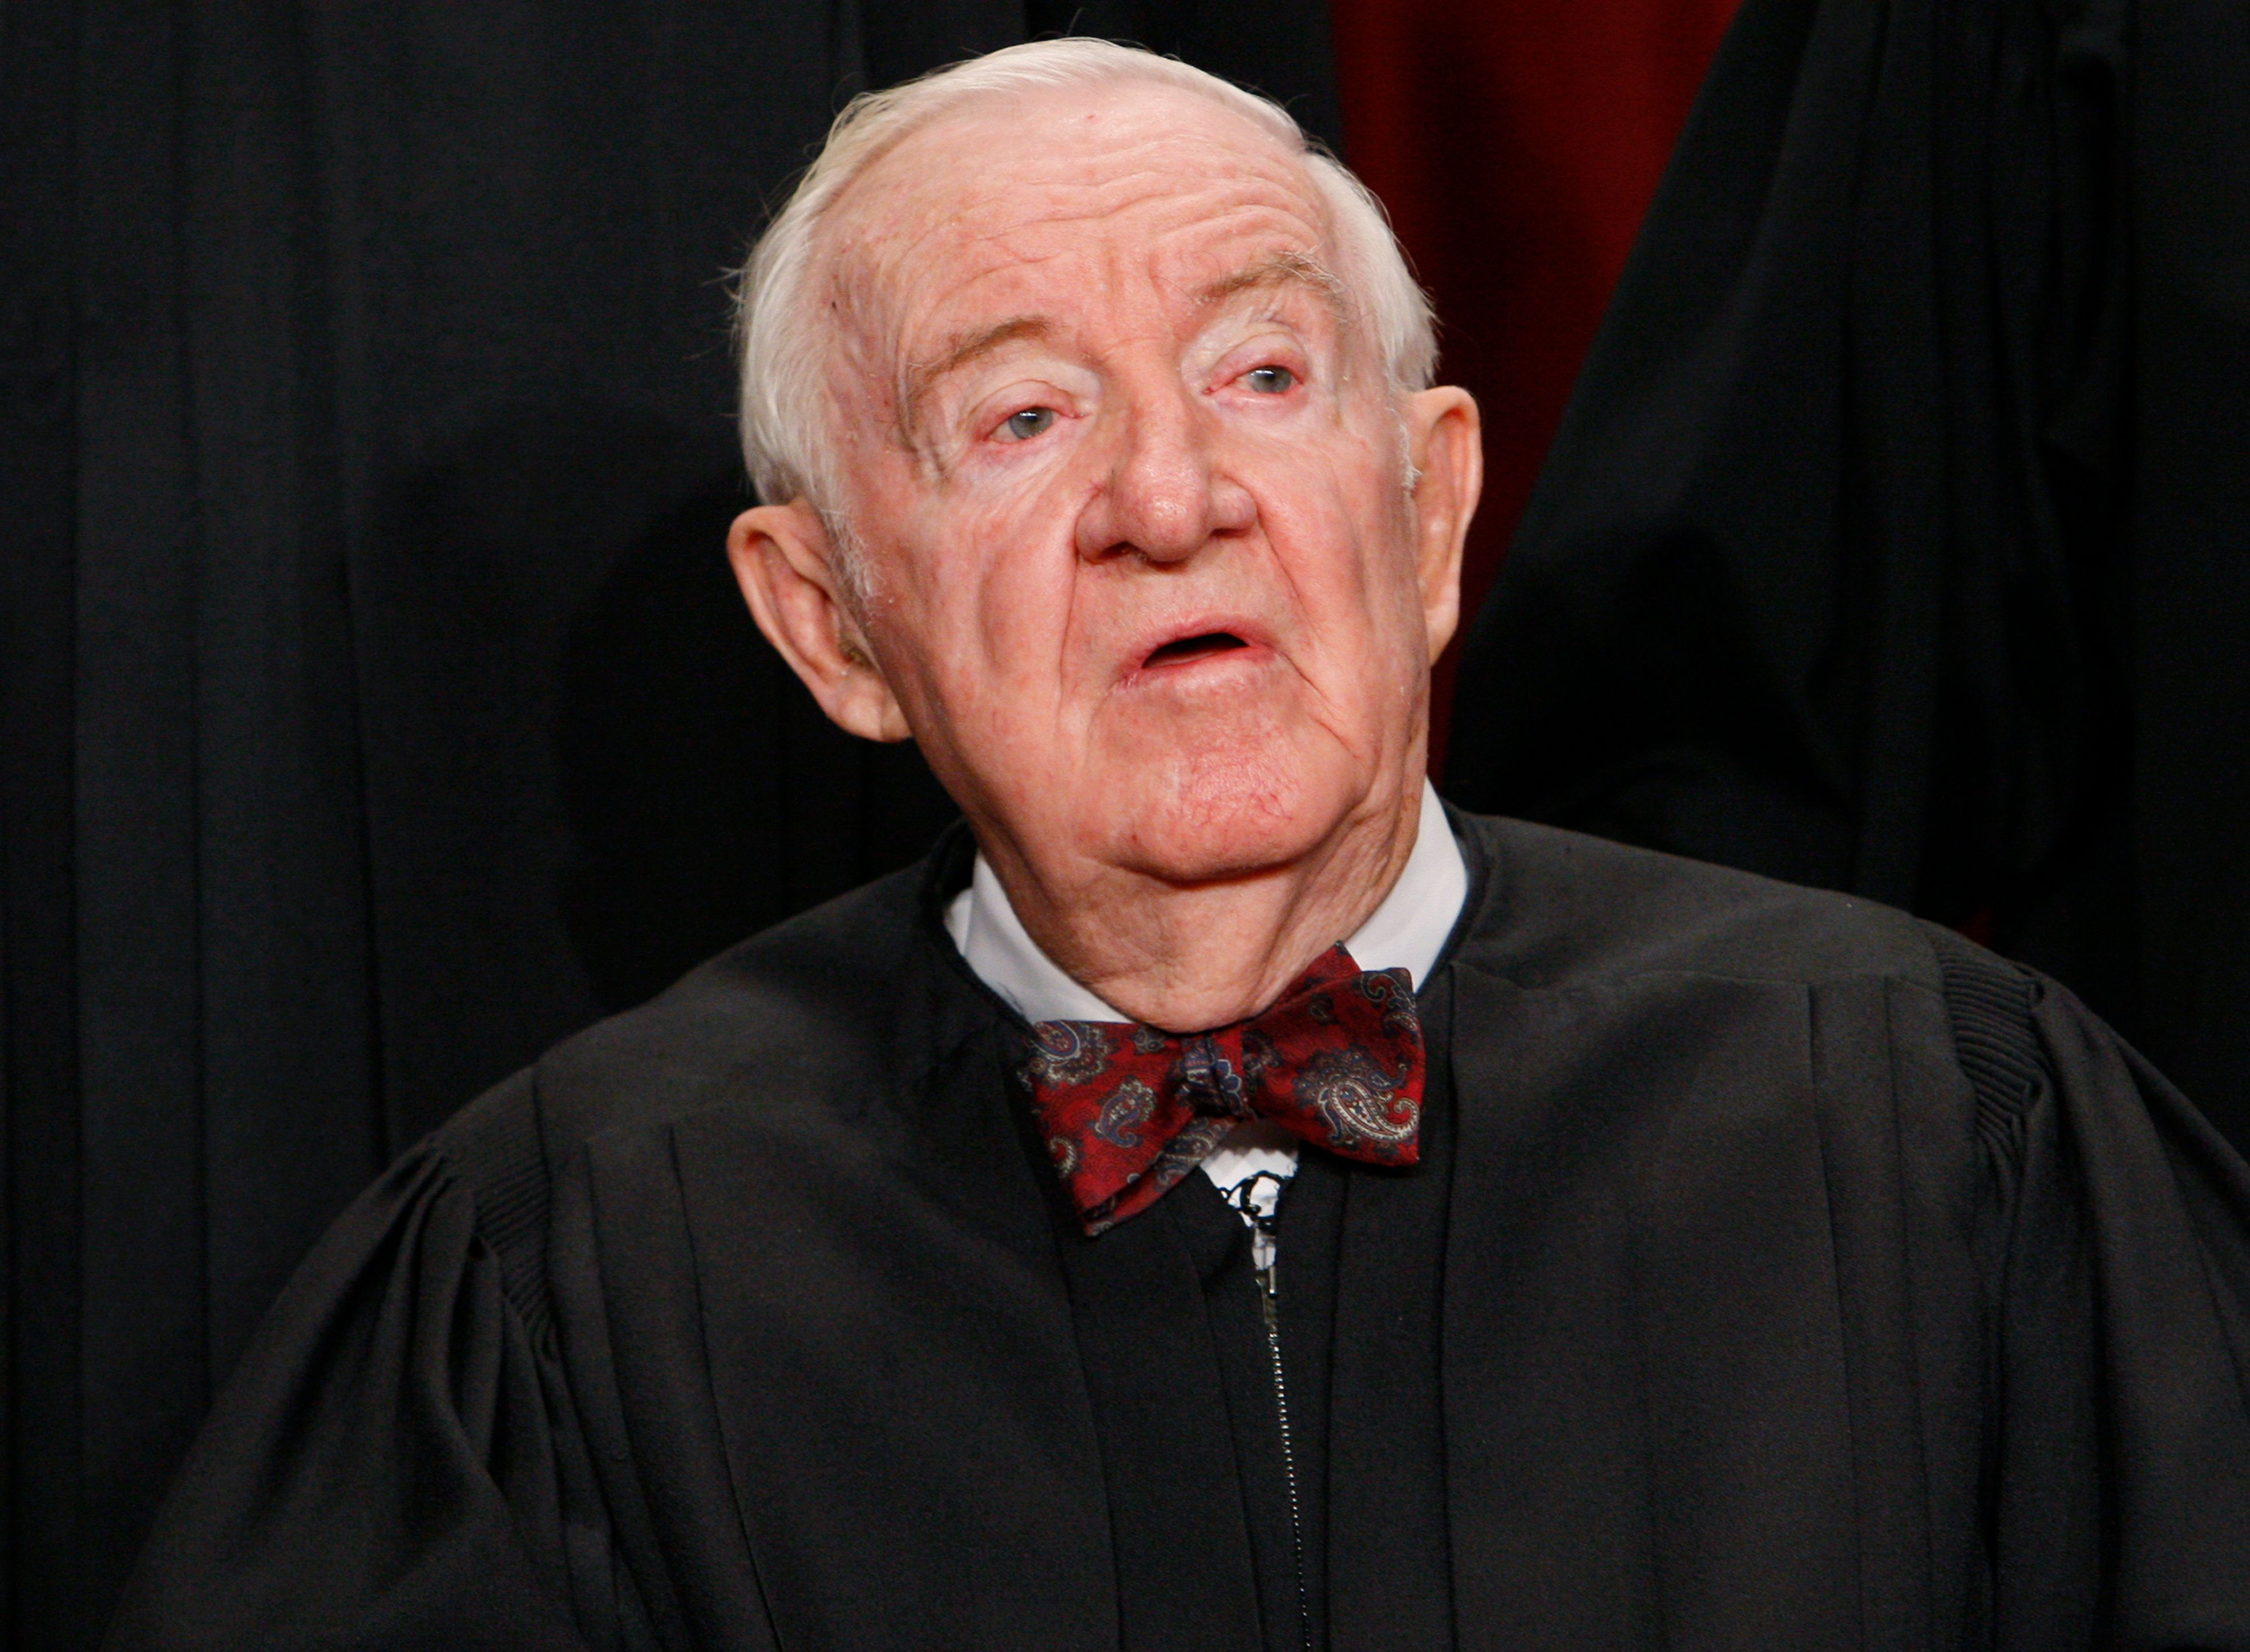 Judge John Stevens served in the Supreme Court from 1975 to 2010.